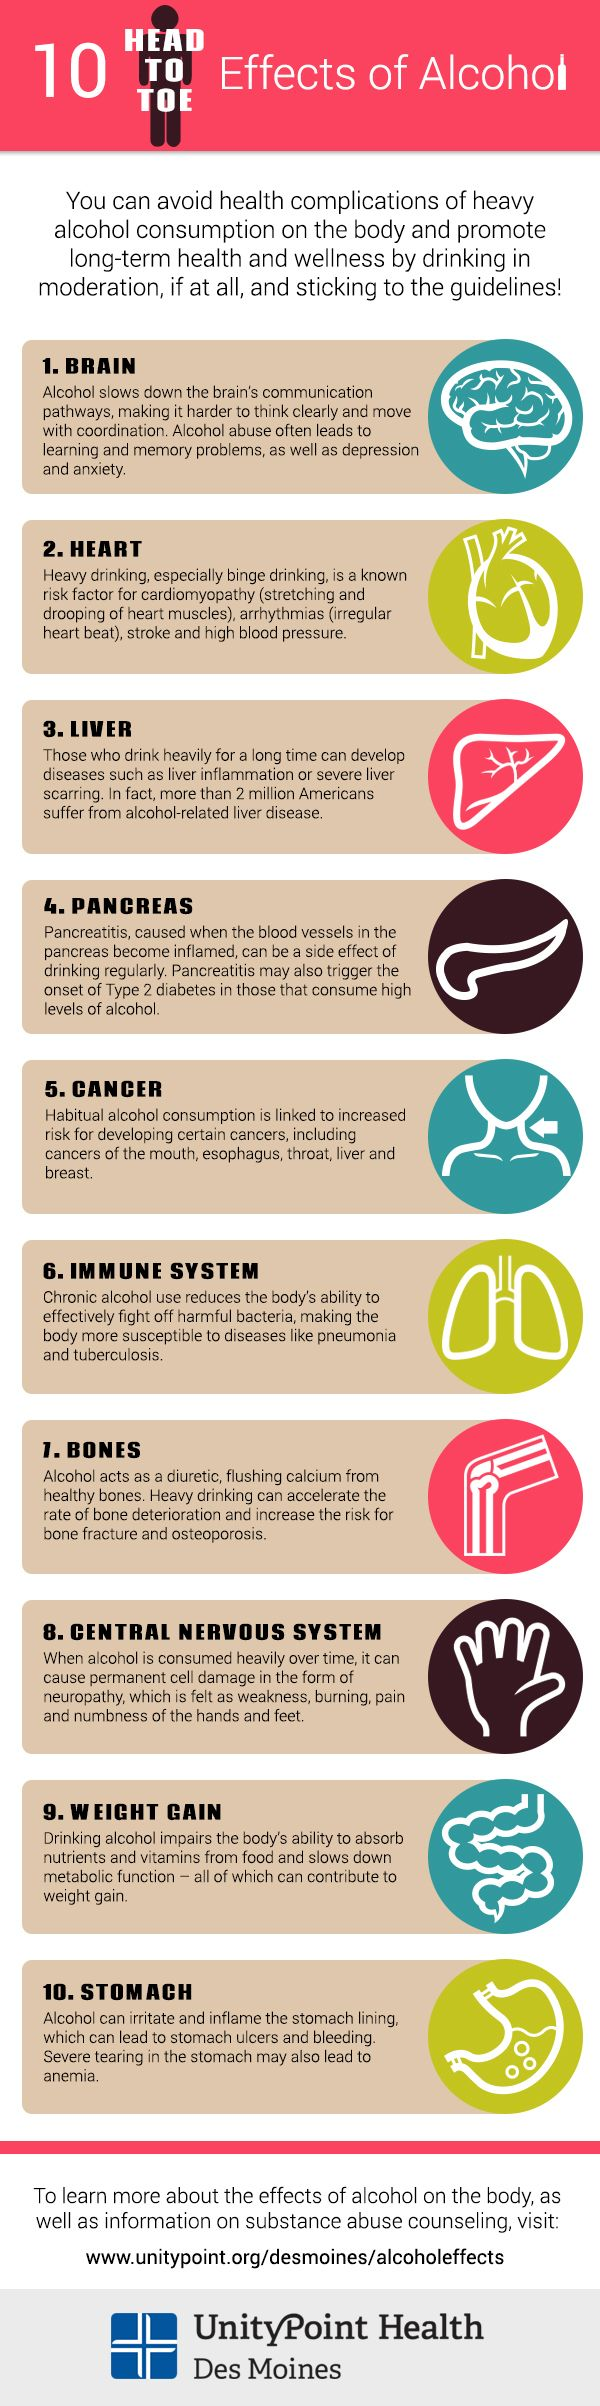 10 Head-to-Toe Effects of Alcohol #Infographic